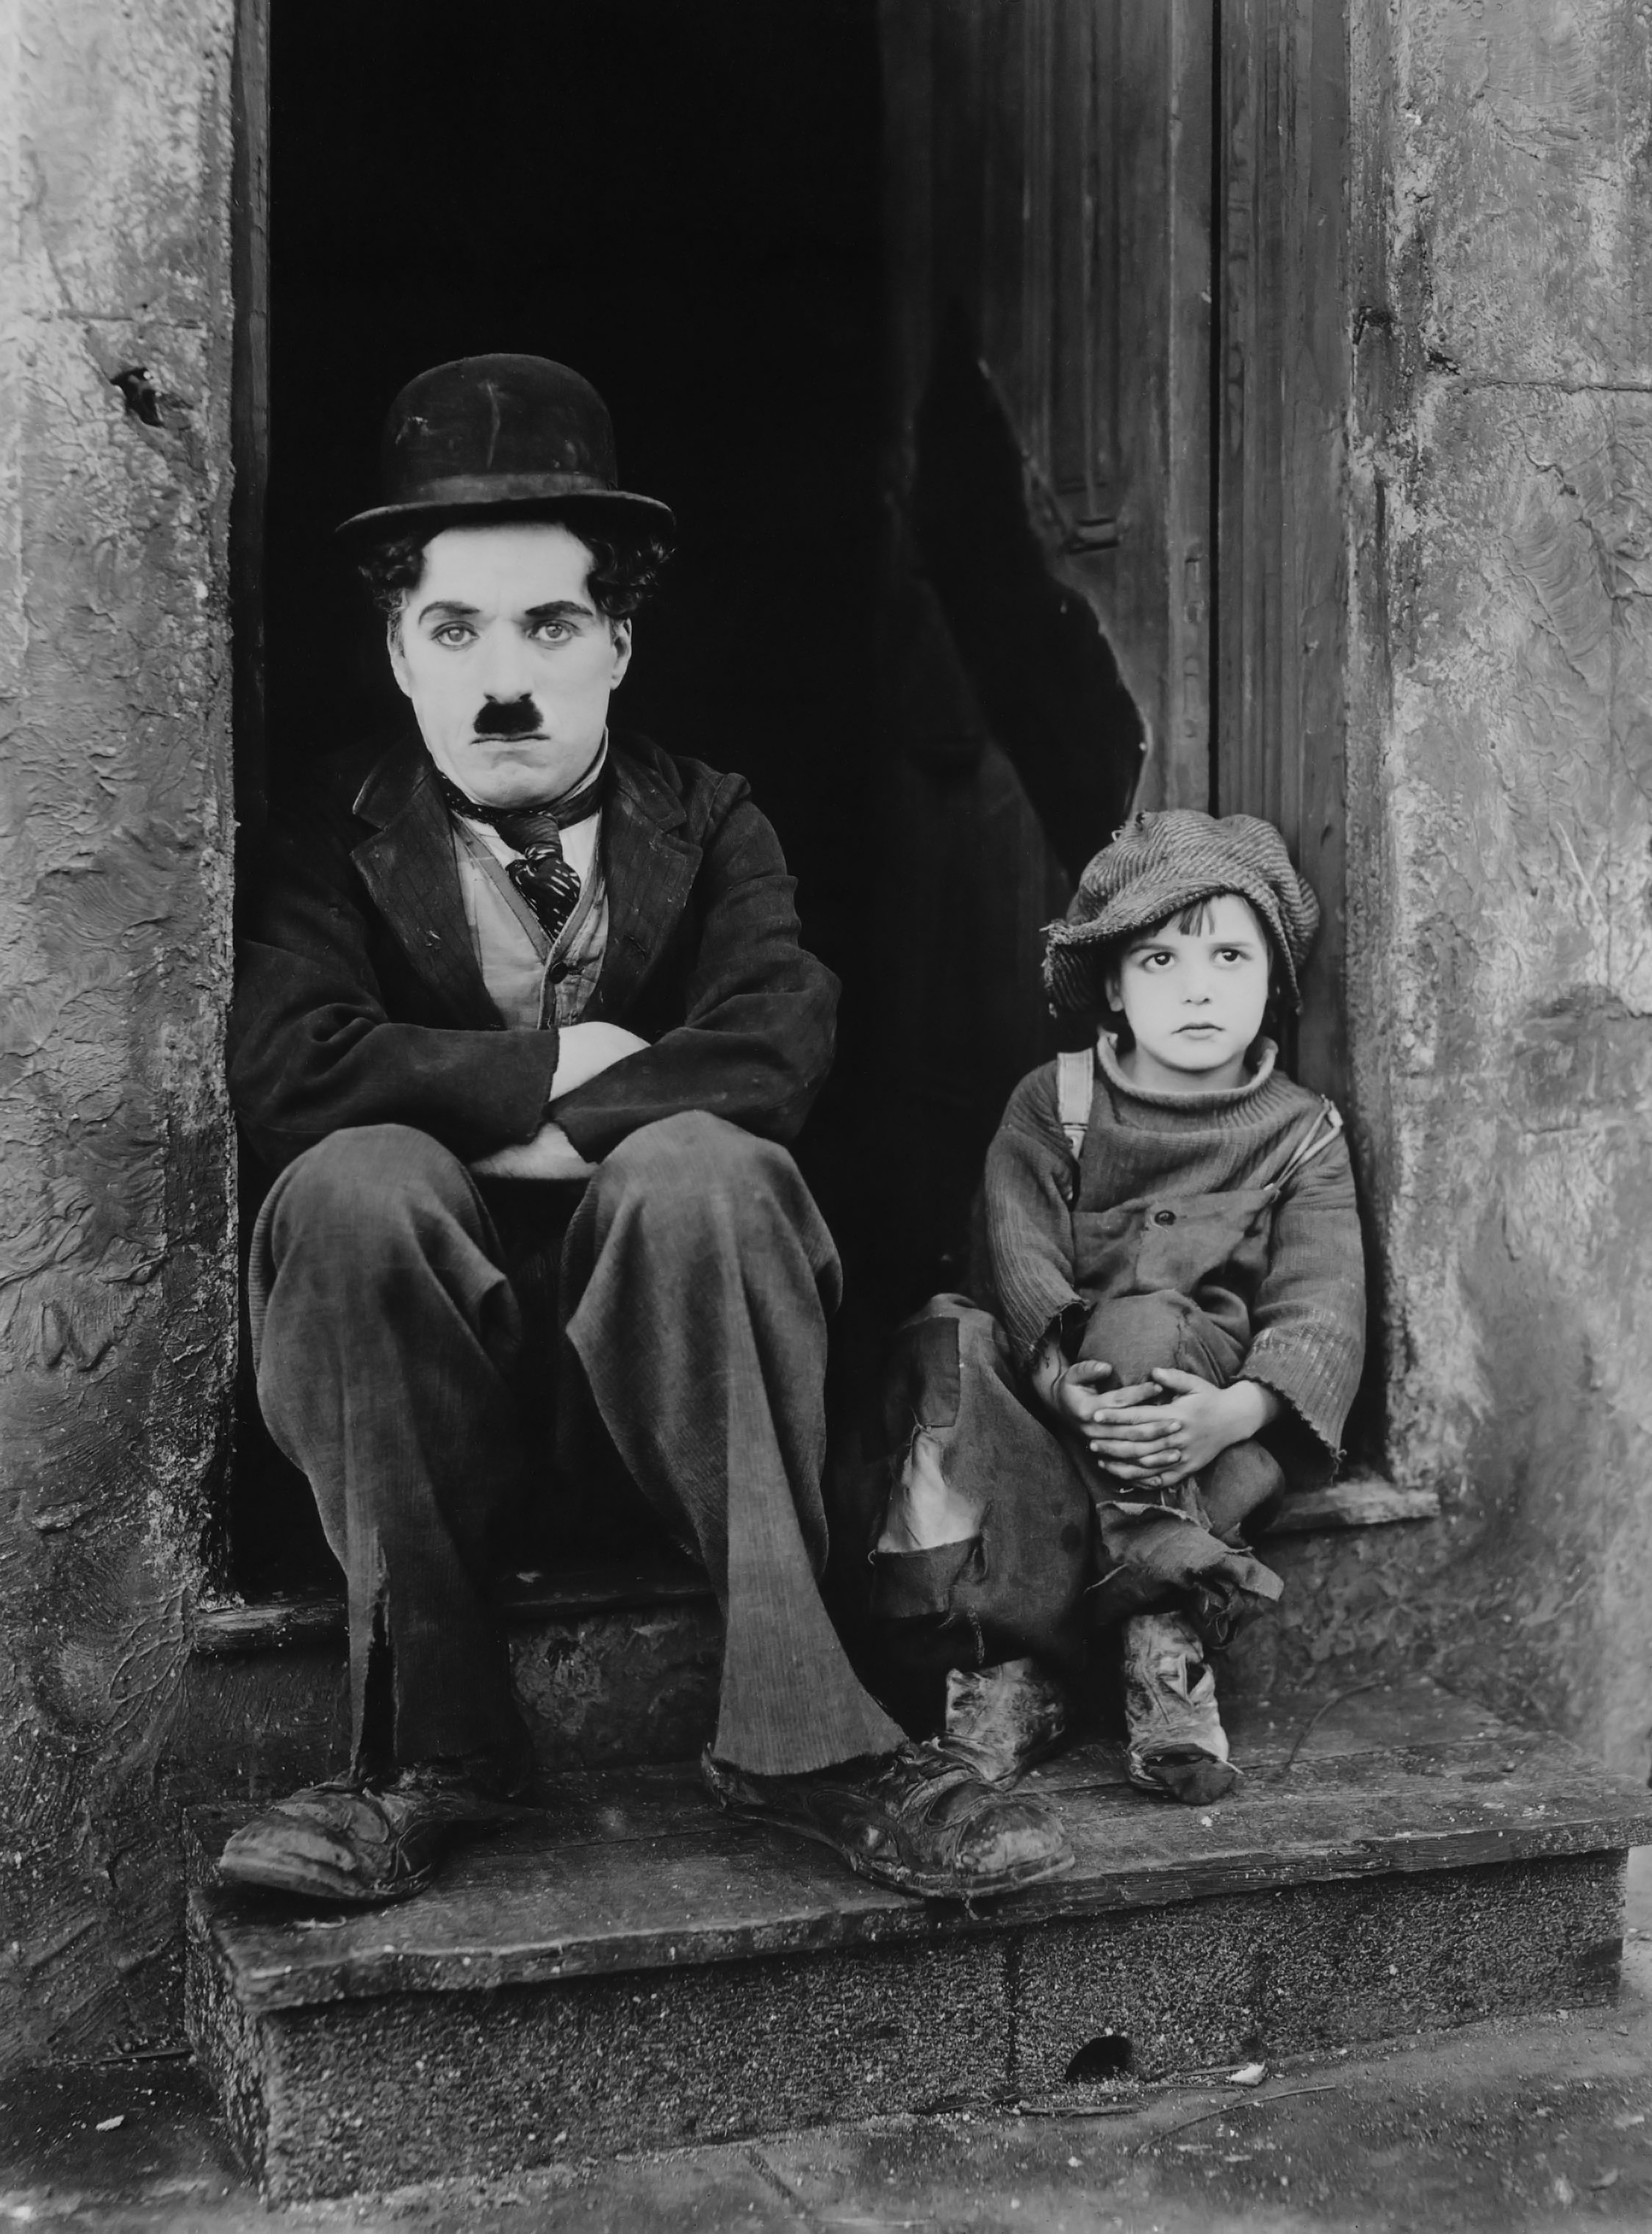 charlie-chaplin-actor-man-person-53408.jpeg